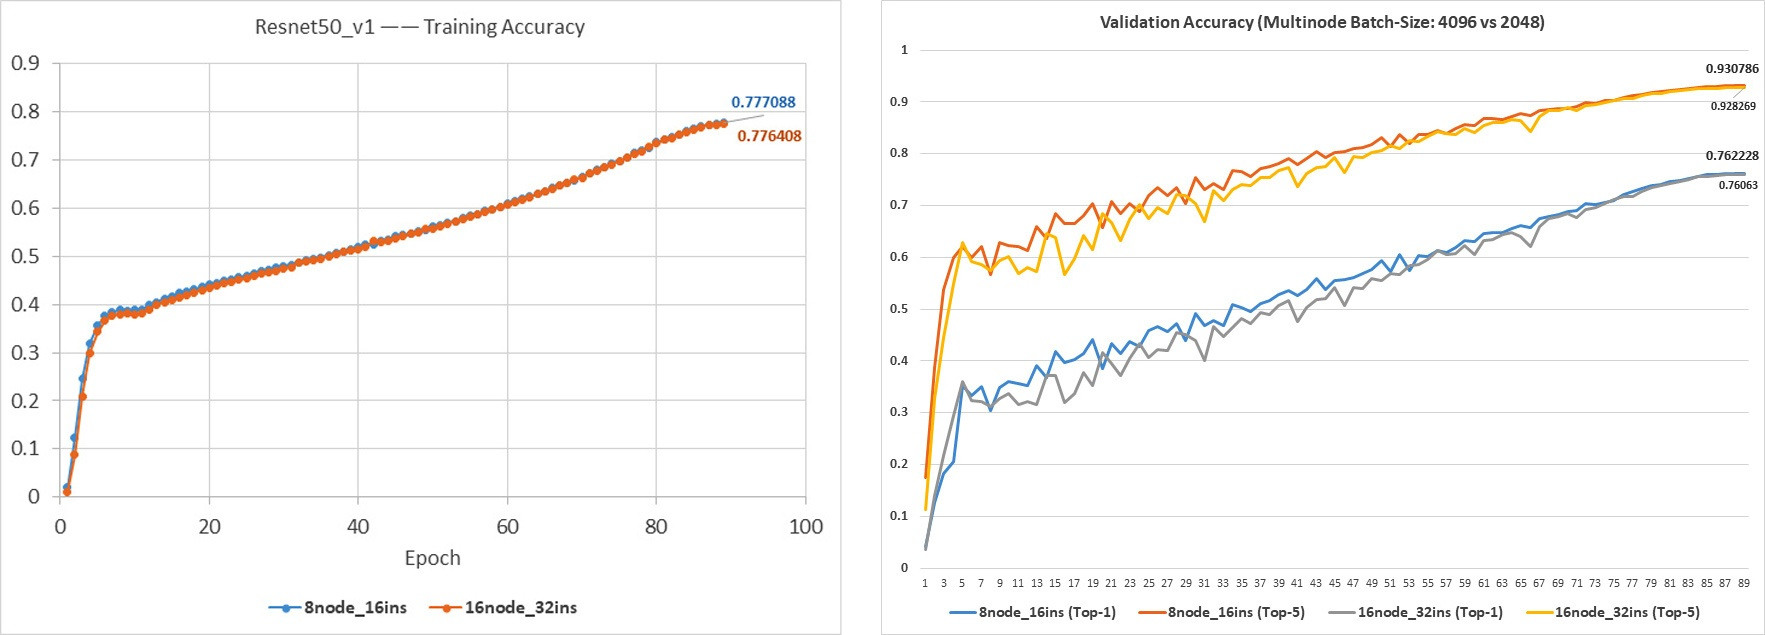 Figure 6 Multi-node Training and Validation Accuracy Trends.